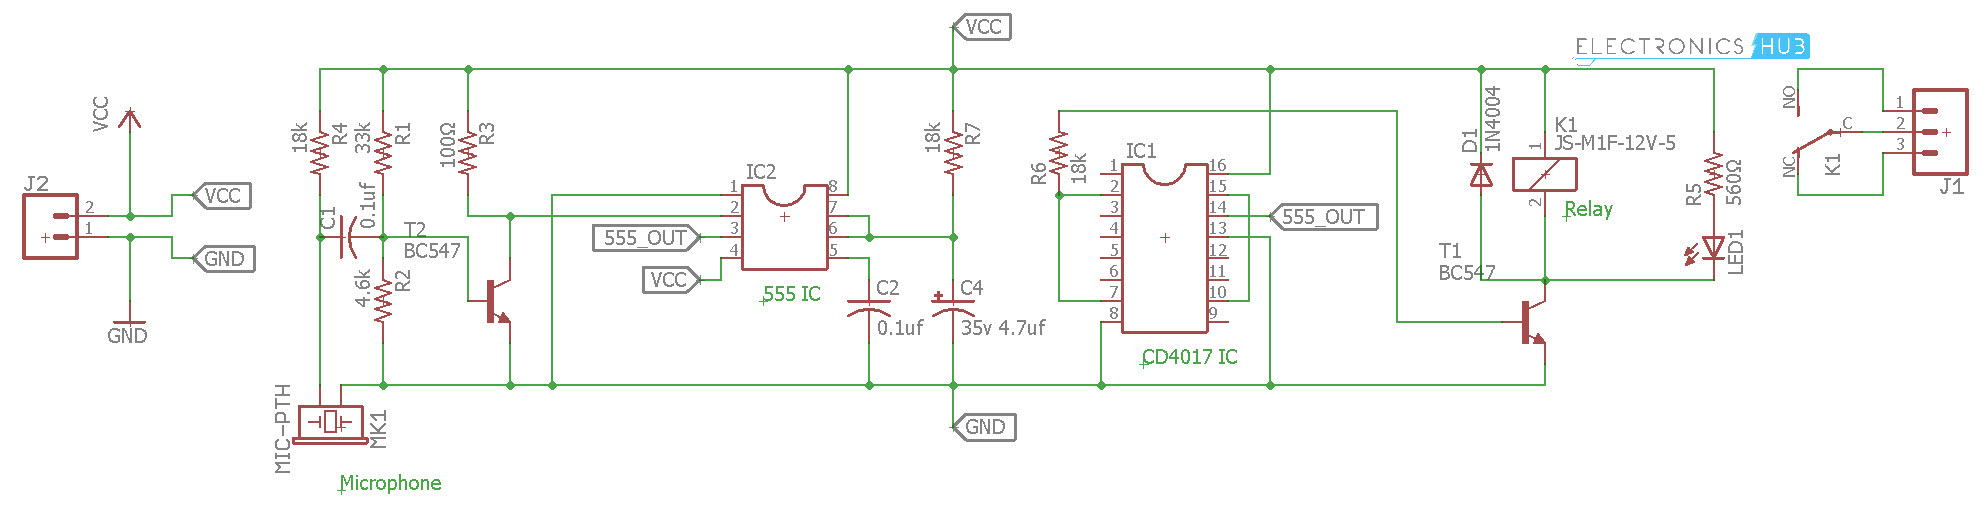 Clap Switch Circuit For Devices Working And Applications Hydraulic Lift Wiring Diagram As Well Light Using 555 4017